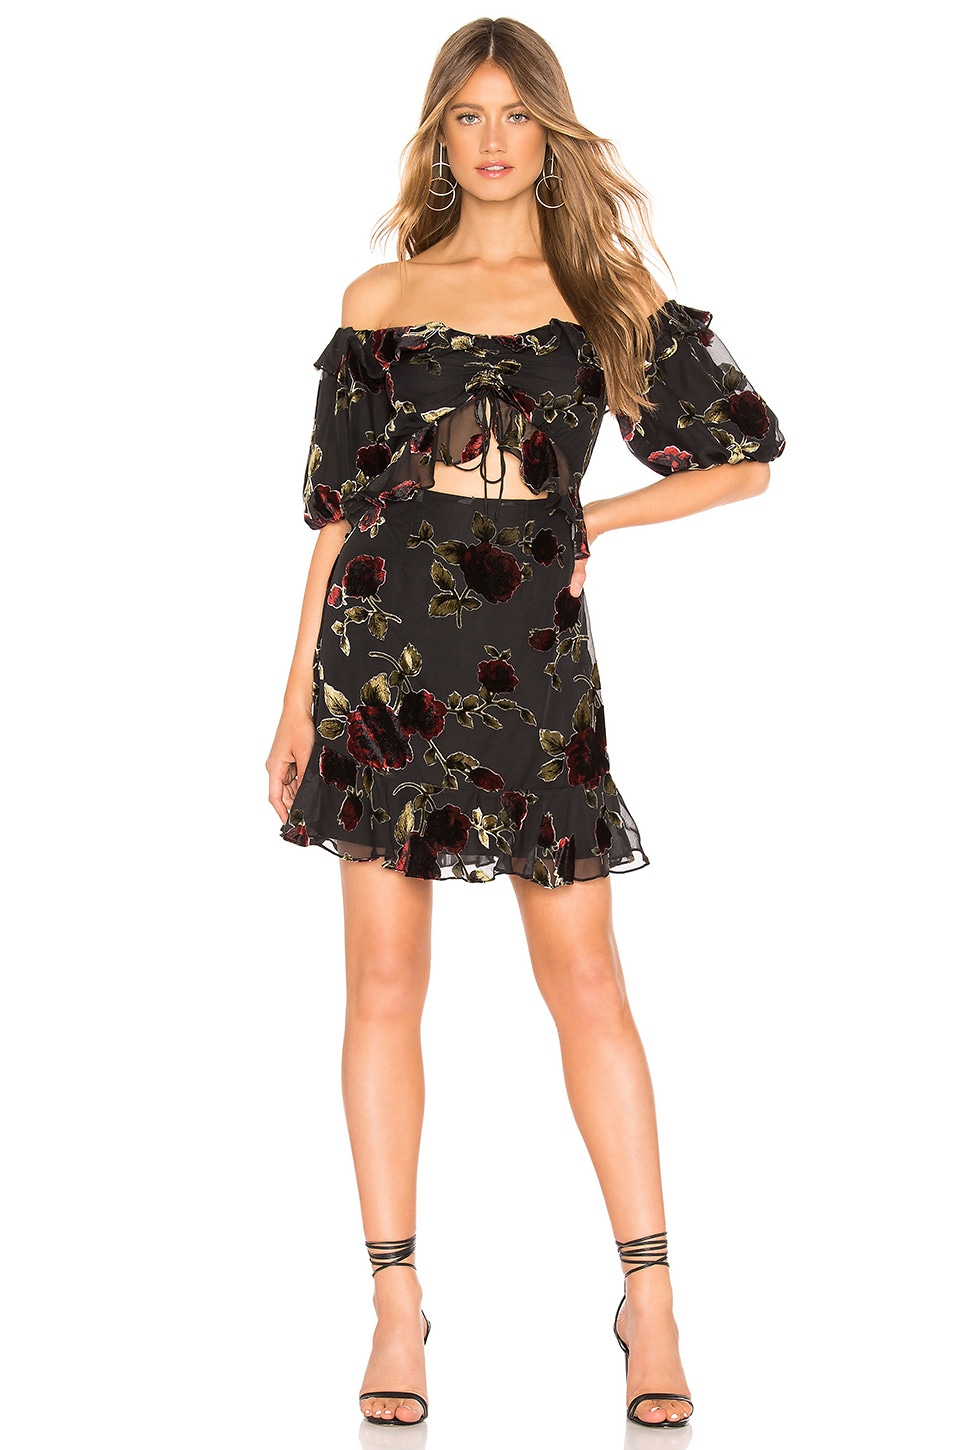 SAYLOR Devyn Dress in Black Floral